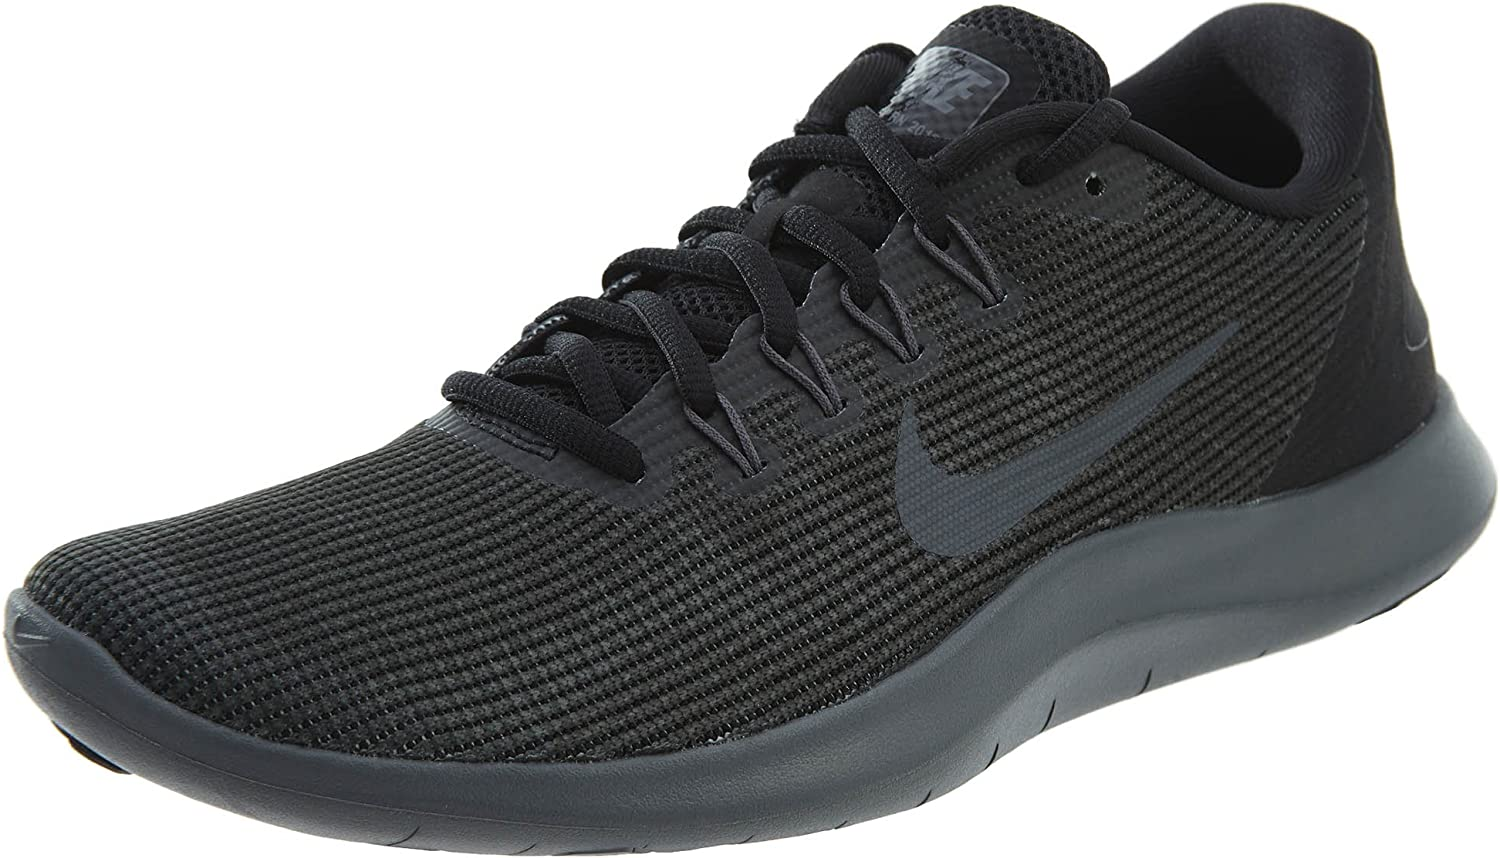 Flex 2018 Rn Competition Running Shoes